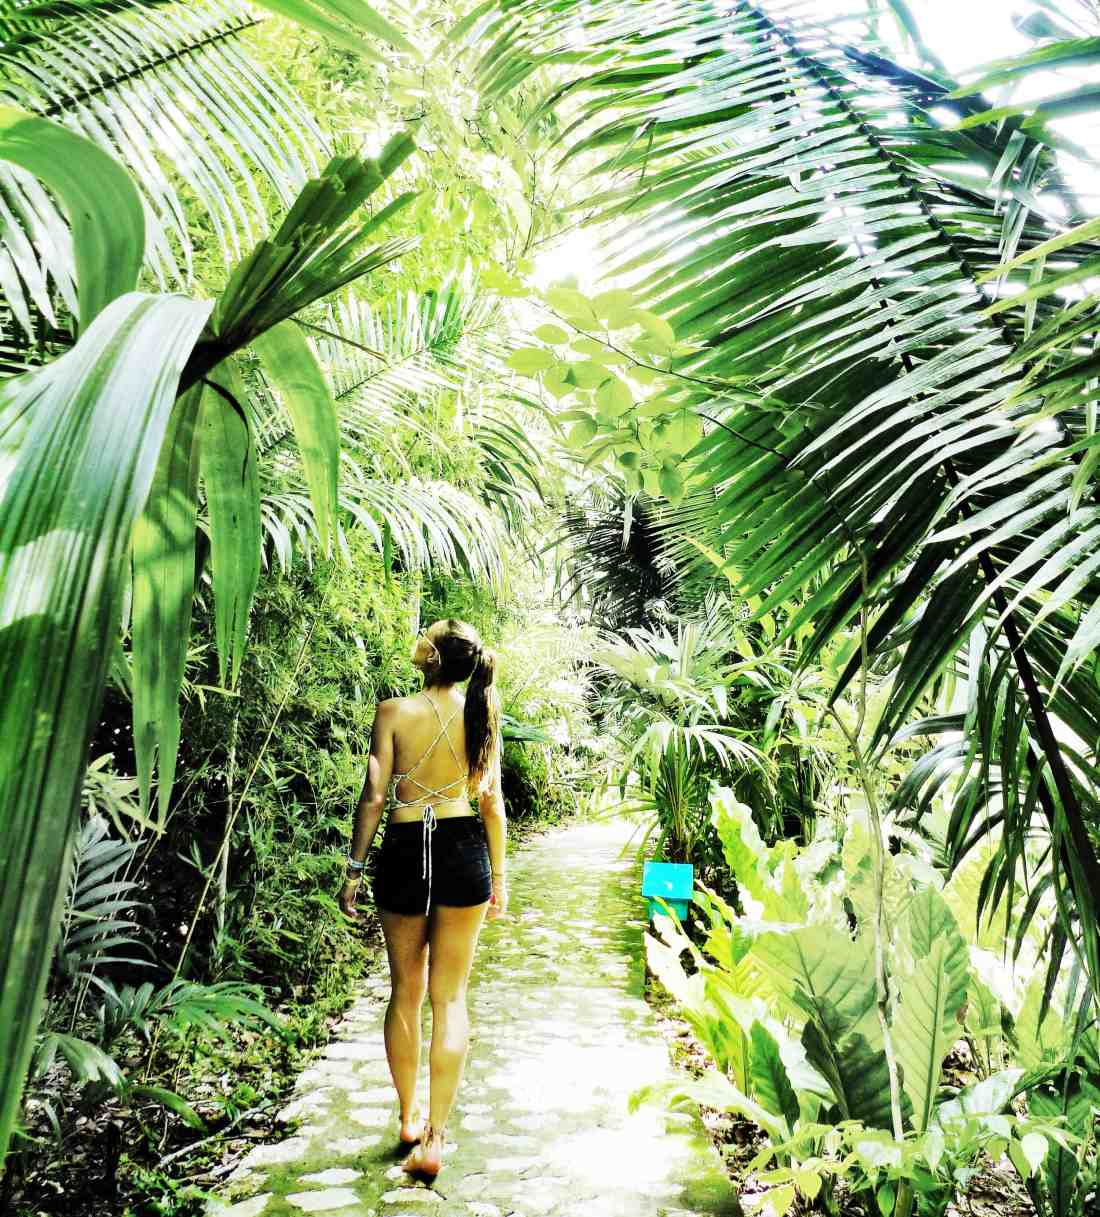 strolling through the jungle lodge hotel paths